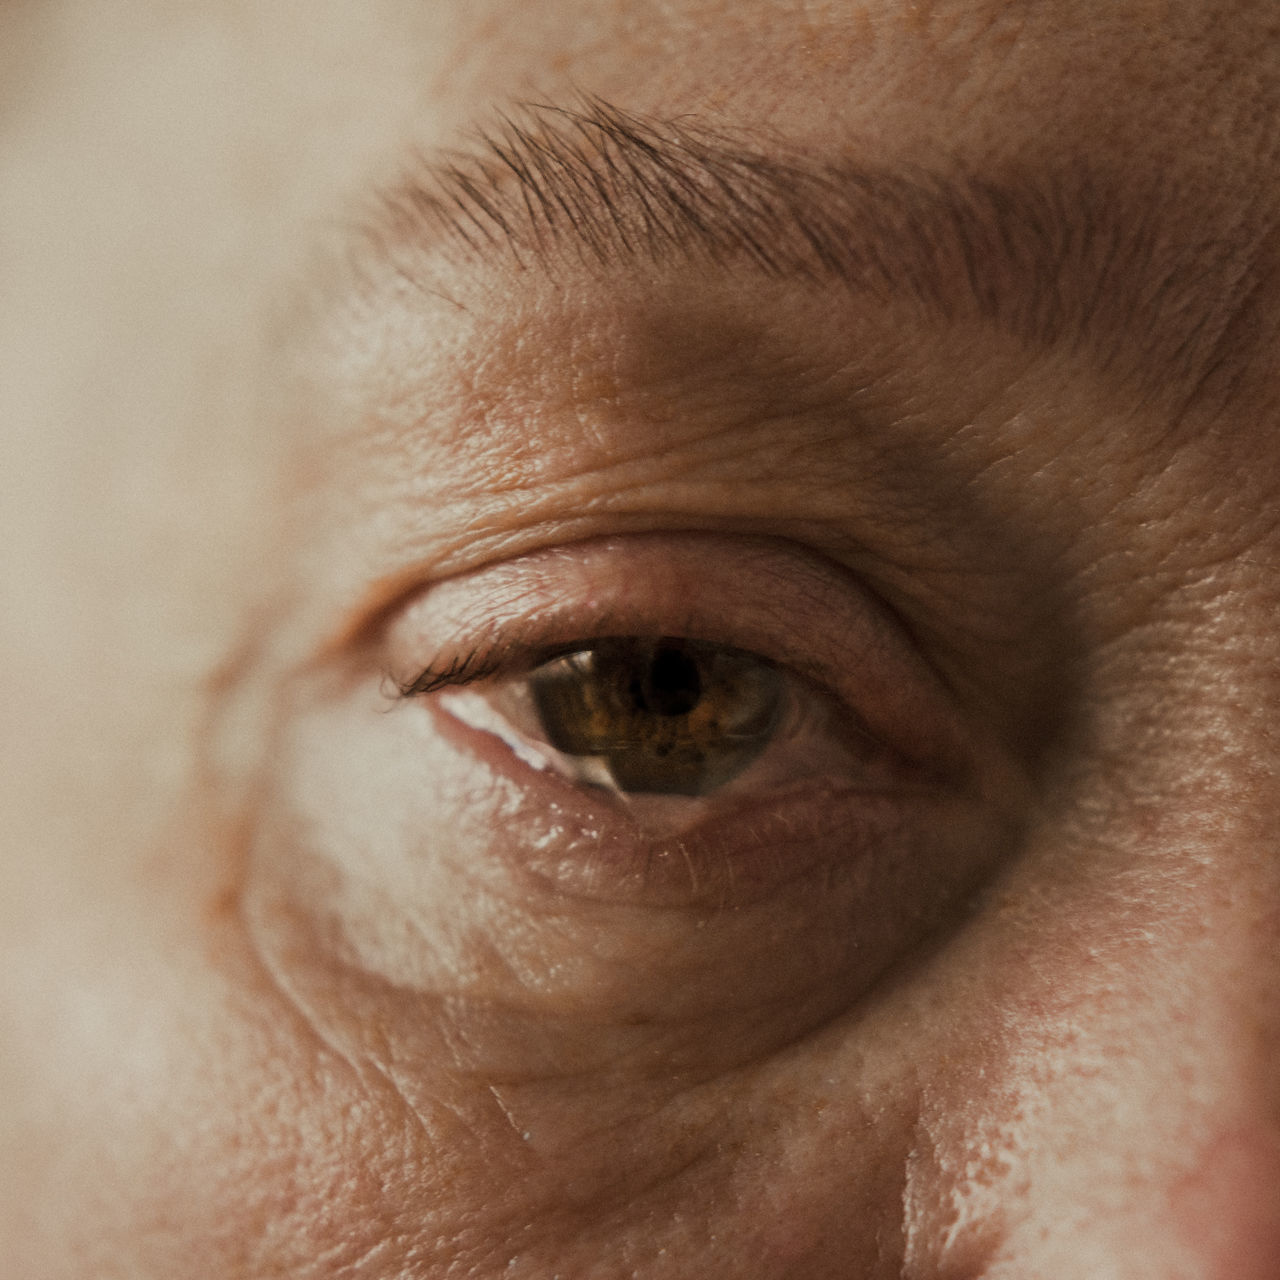 CLOSE-UP PORTRAIT OF PERSON EYE